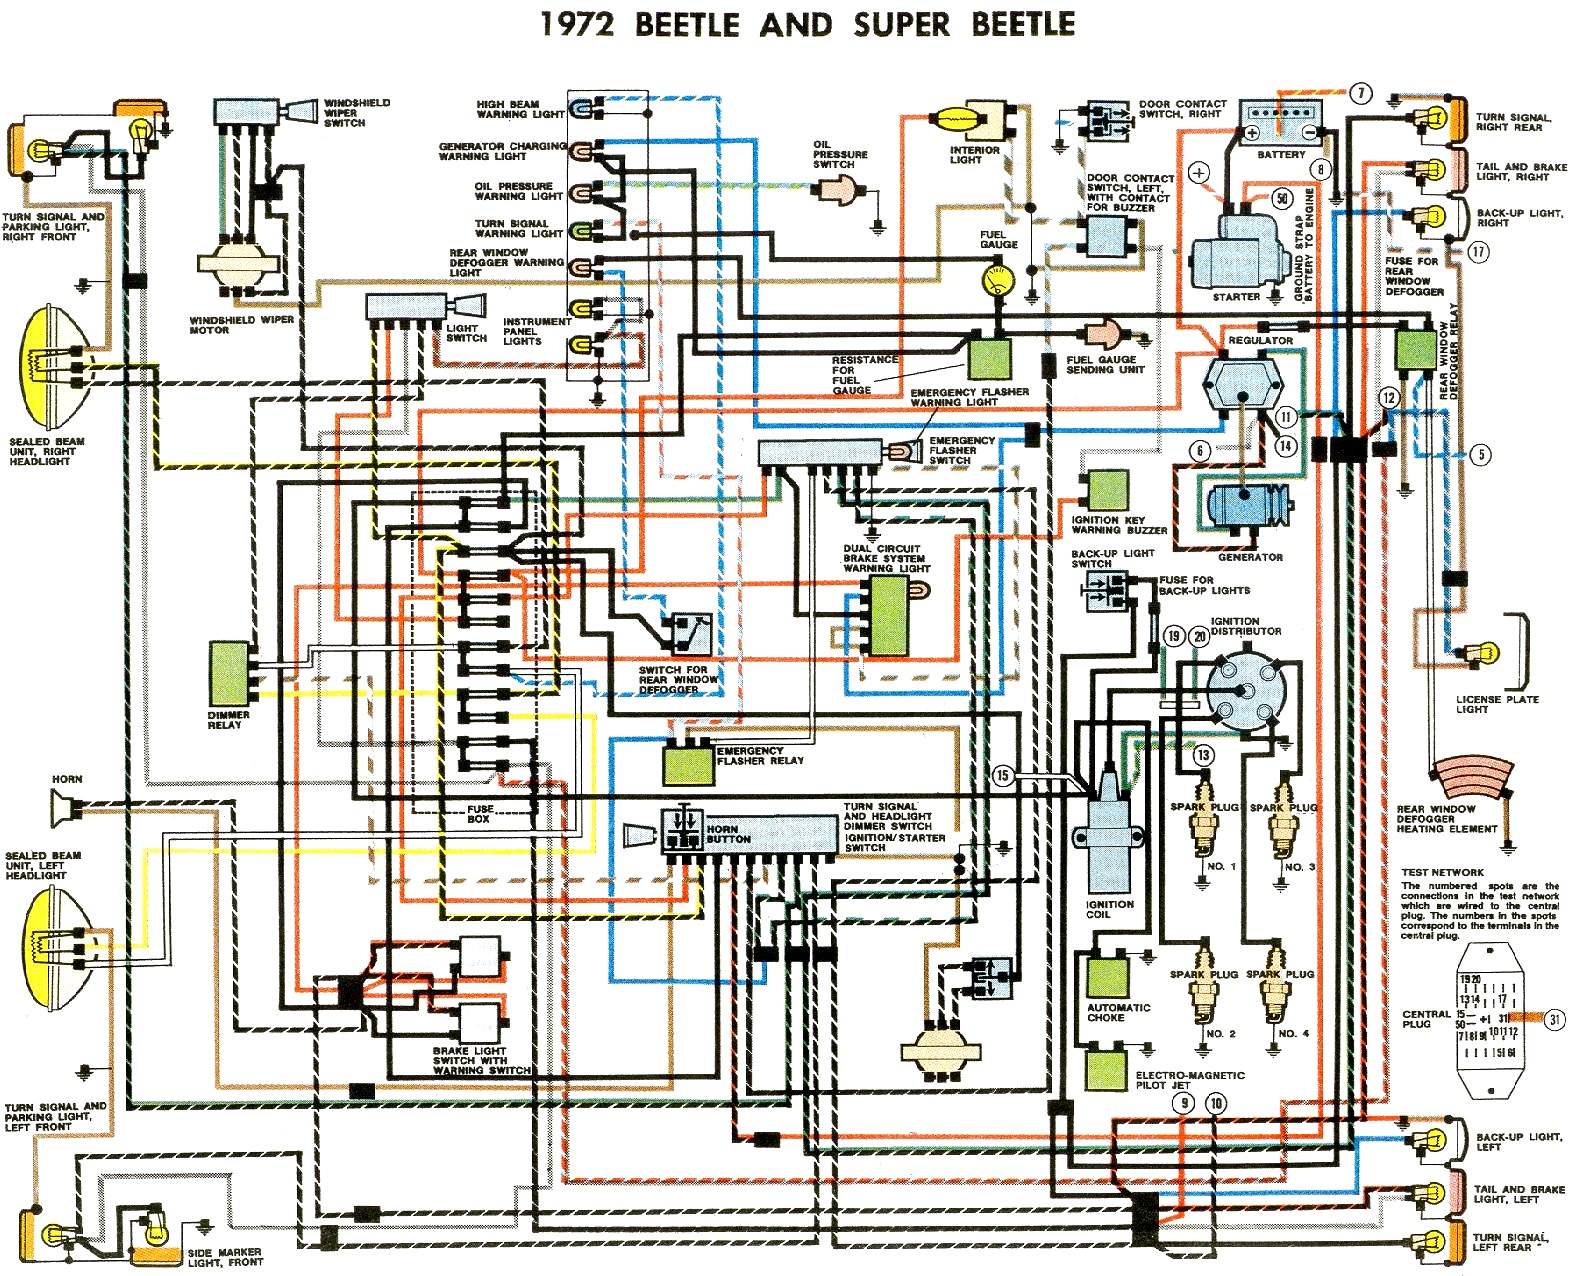 bug_72 vw golf 1 wiring diagram vw golf 1 wiring diagram \u2022 wiring vw ignition wiring diagram at soozxer.org